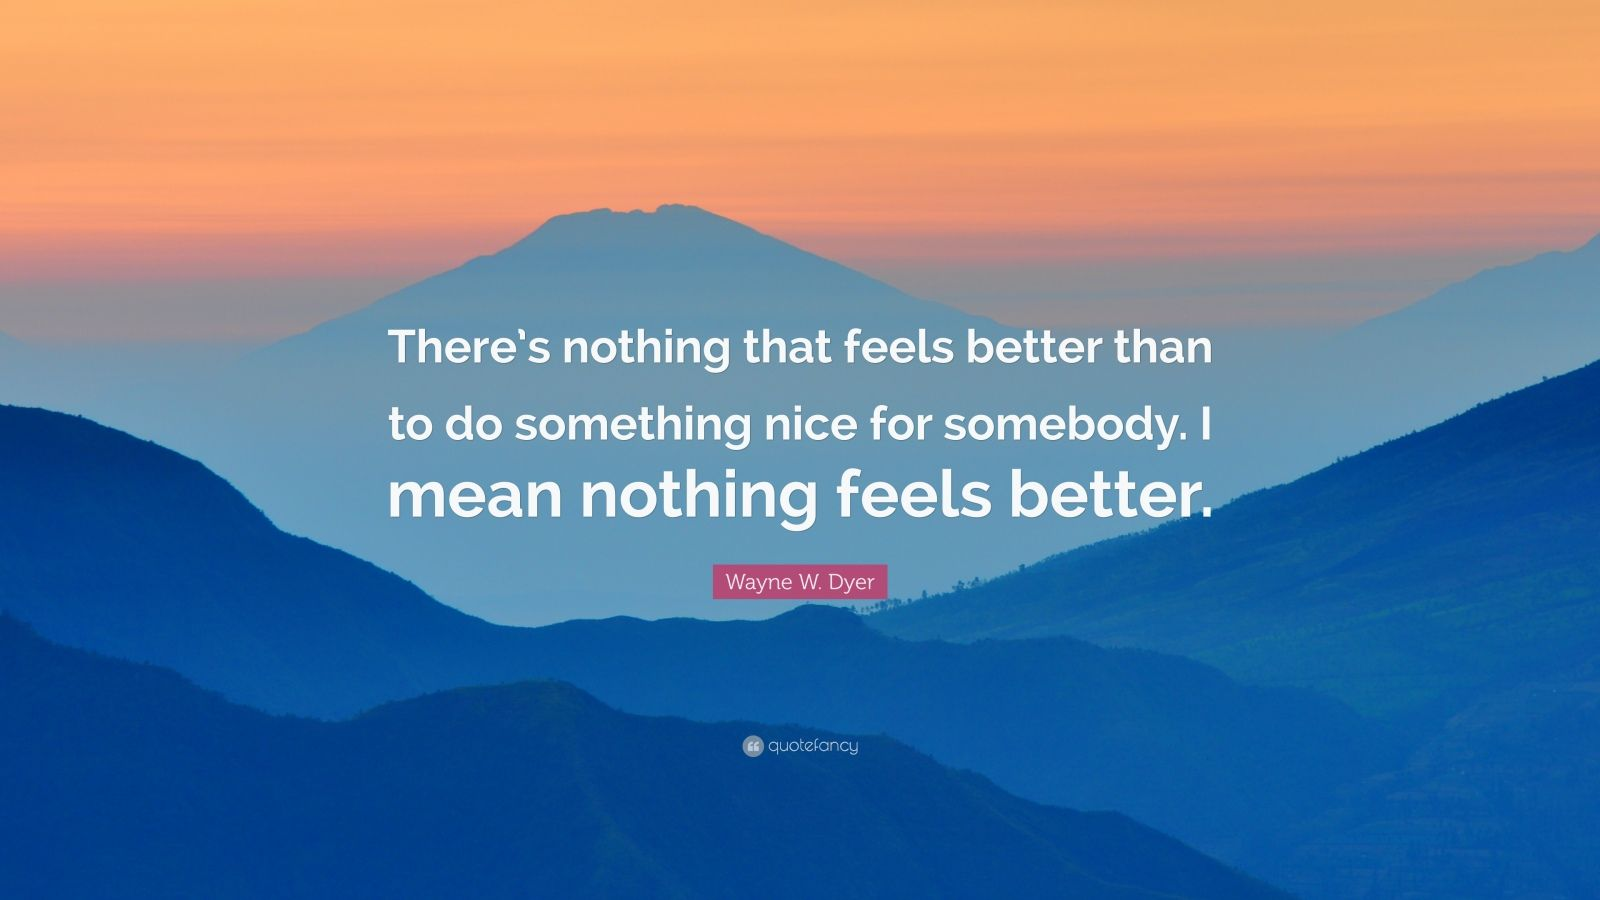 """Wayne W. Dyer Quote: """"There's nothing that feels better than to do something nice for somebody. I mean nothing feels better."""""""